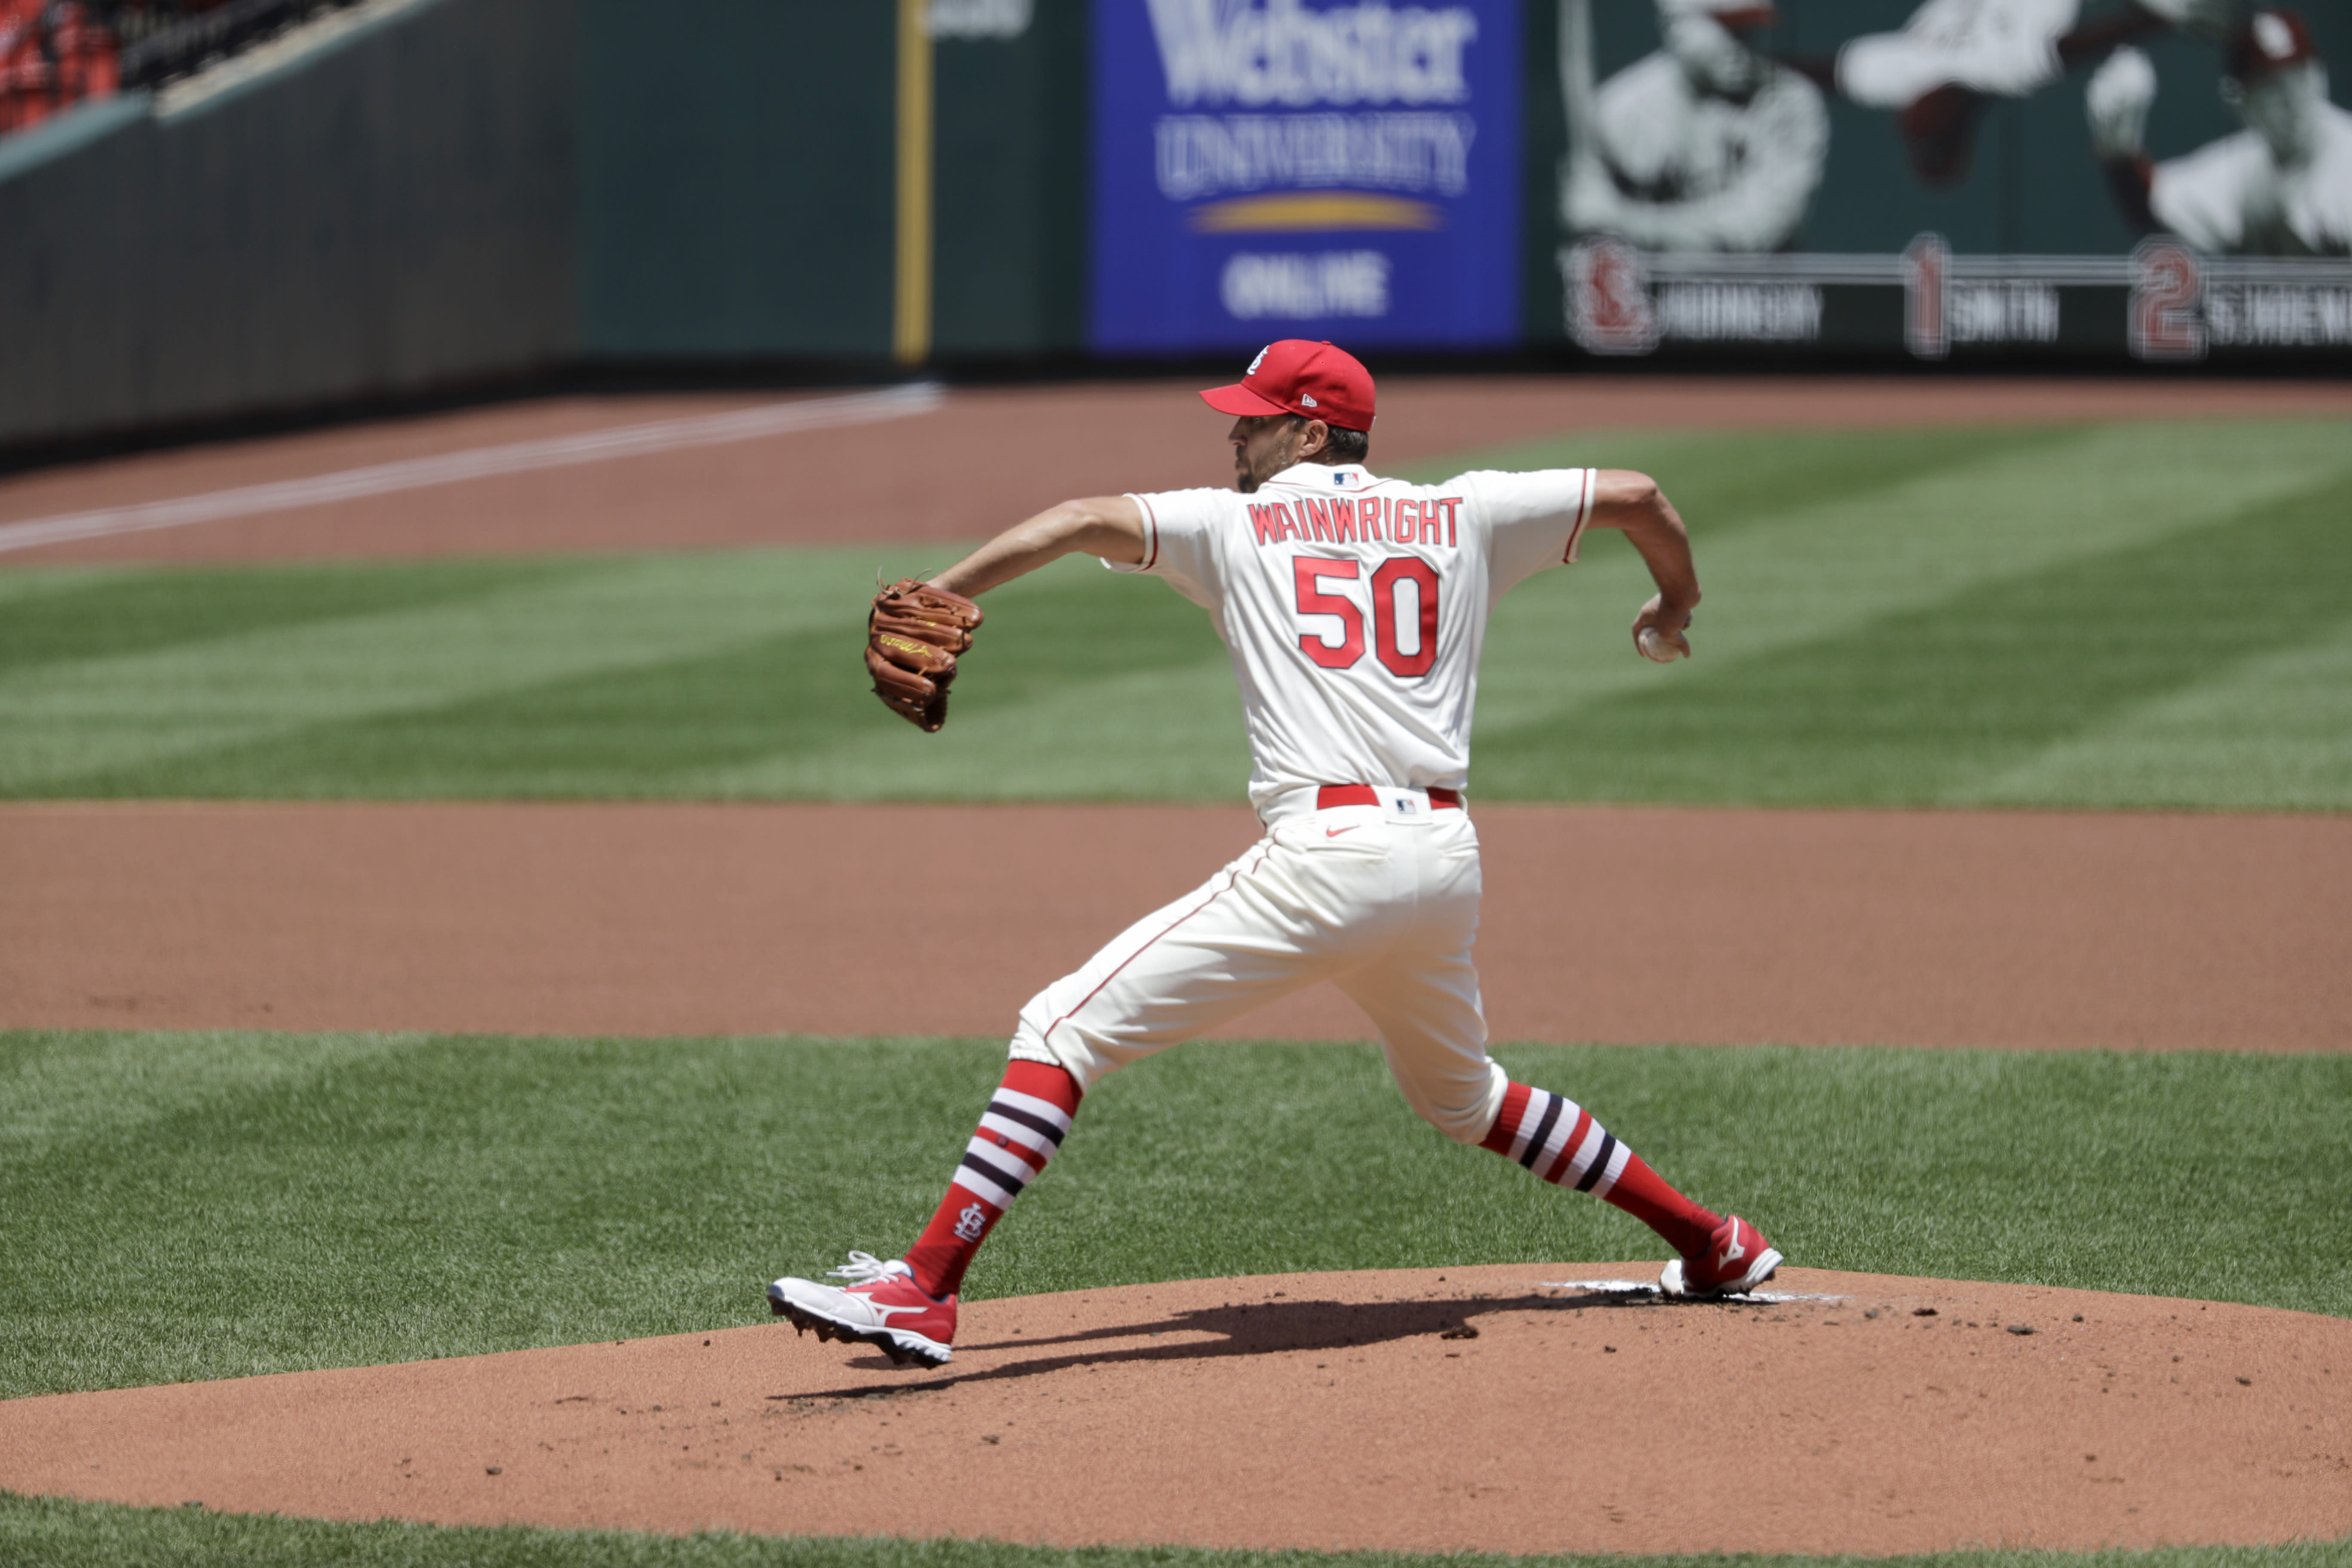 St. Louis Cardinals starting pitcher Adam Wainwright throws during the first inning of a baseball game against the Pittsburgh Pirates Saturday, July 25, 2020, in St. Louis. (AP Photo/Jeff Roberson)